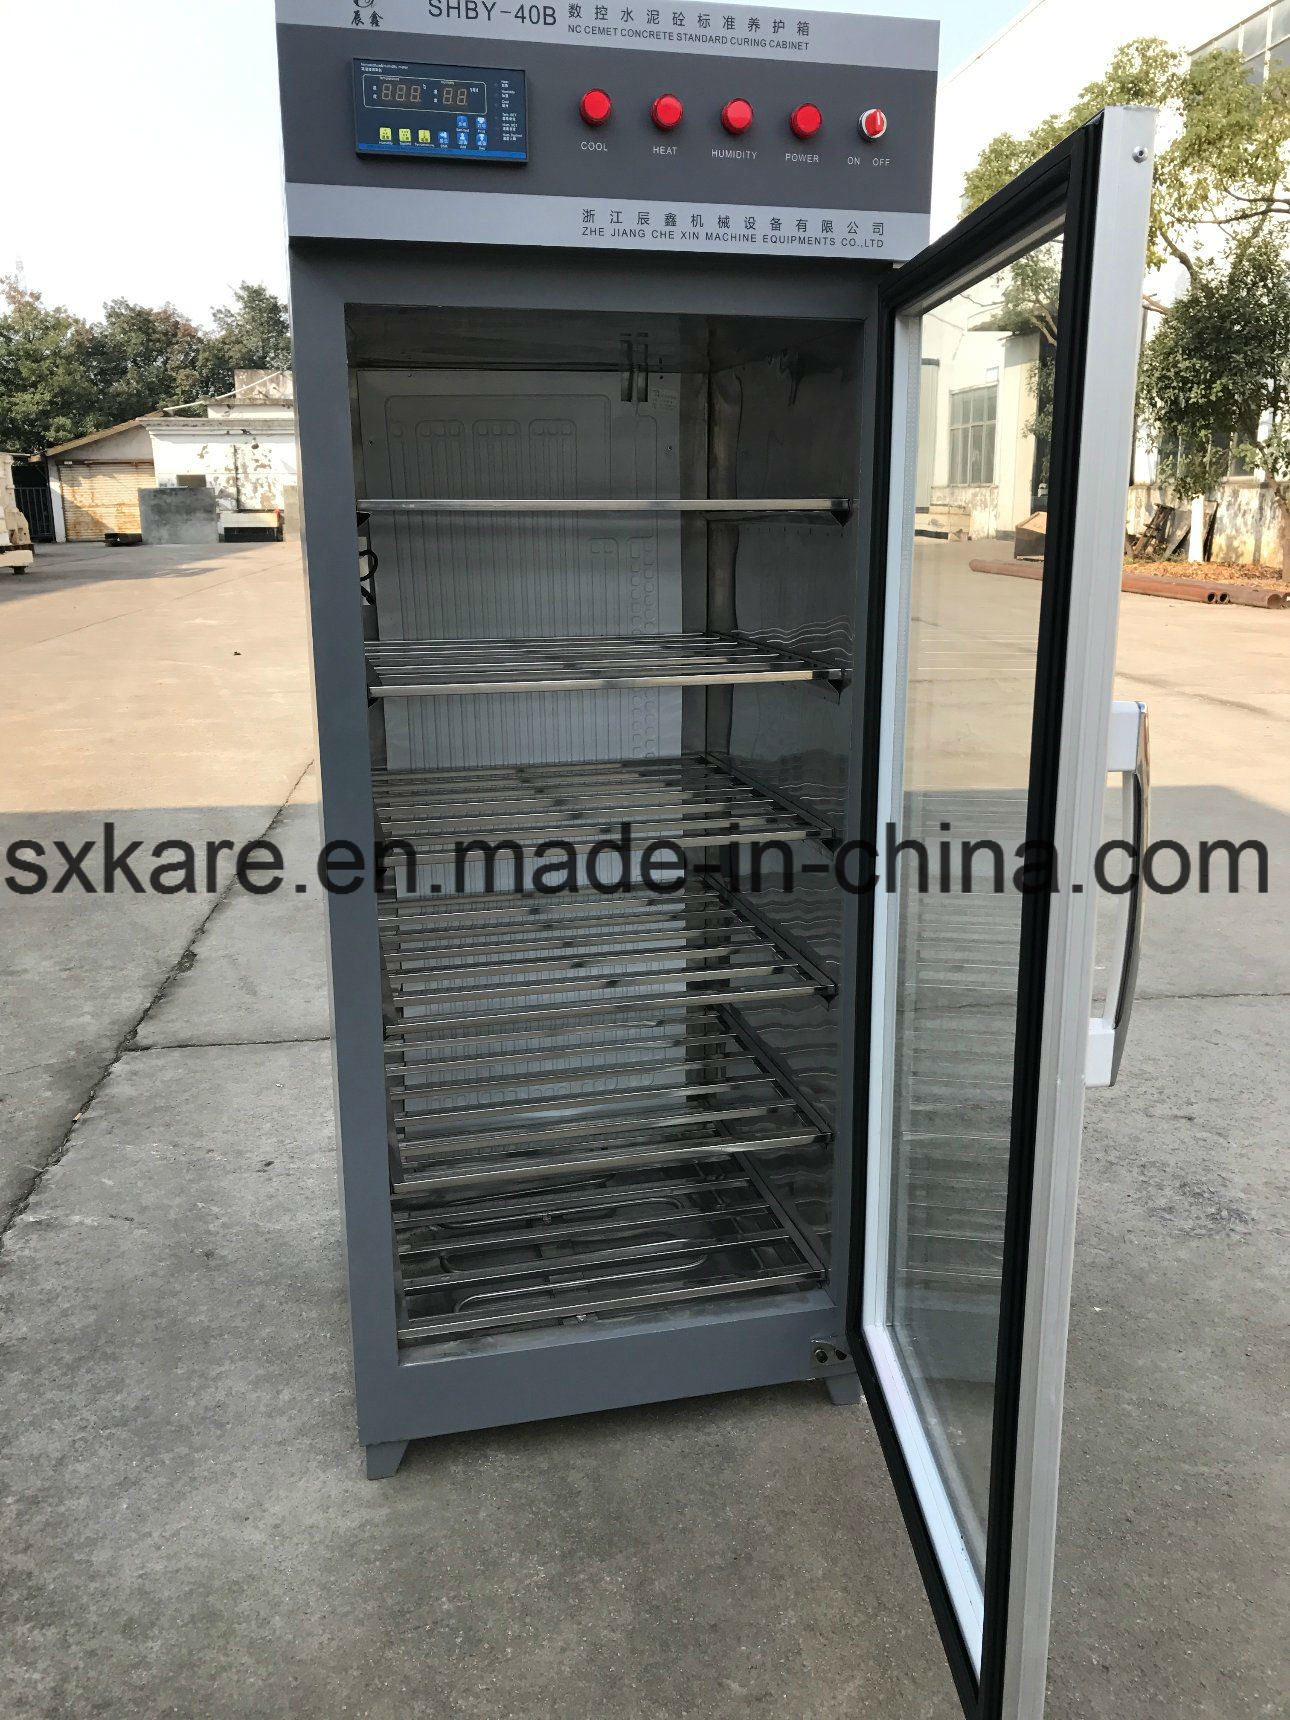 Nc Cement Concrete Standard Curing Cabinet (SHBY-40B)